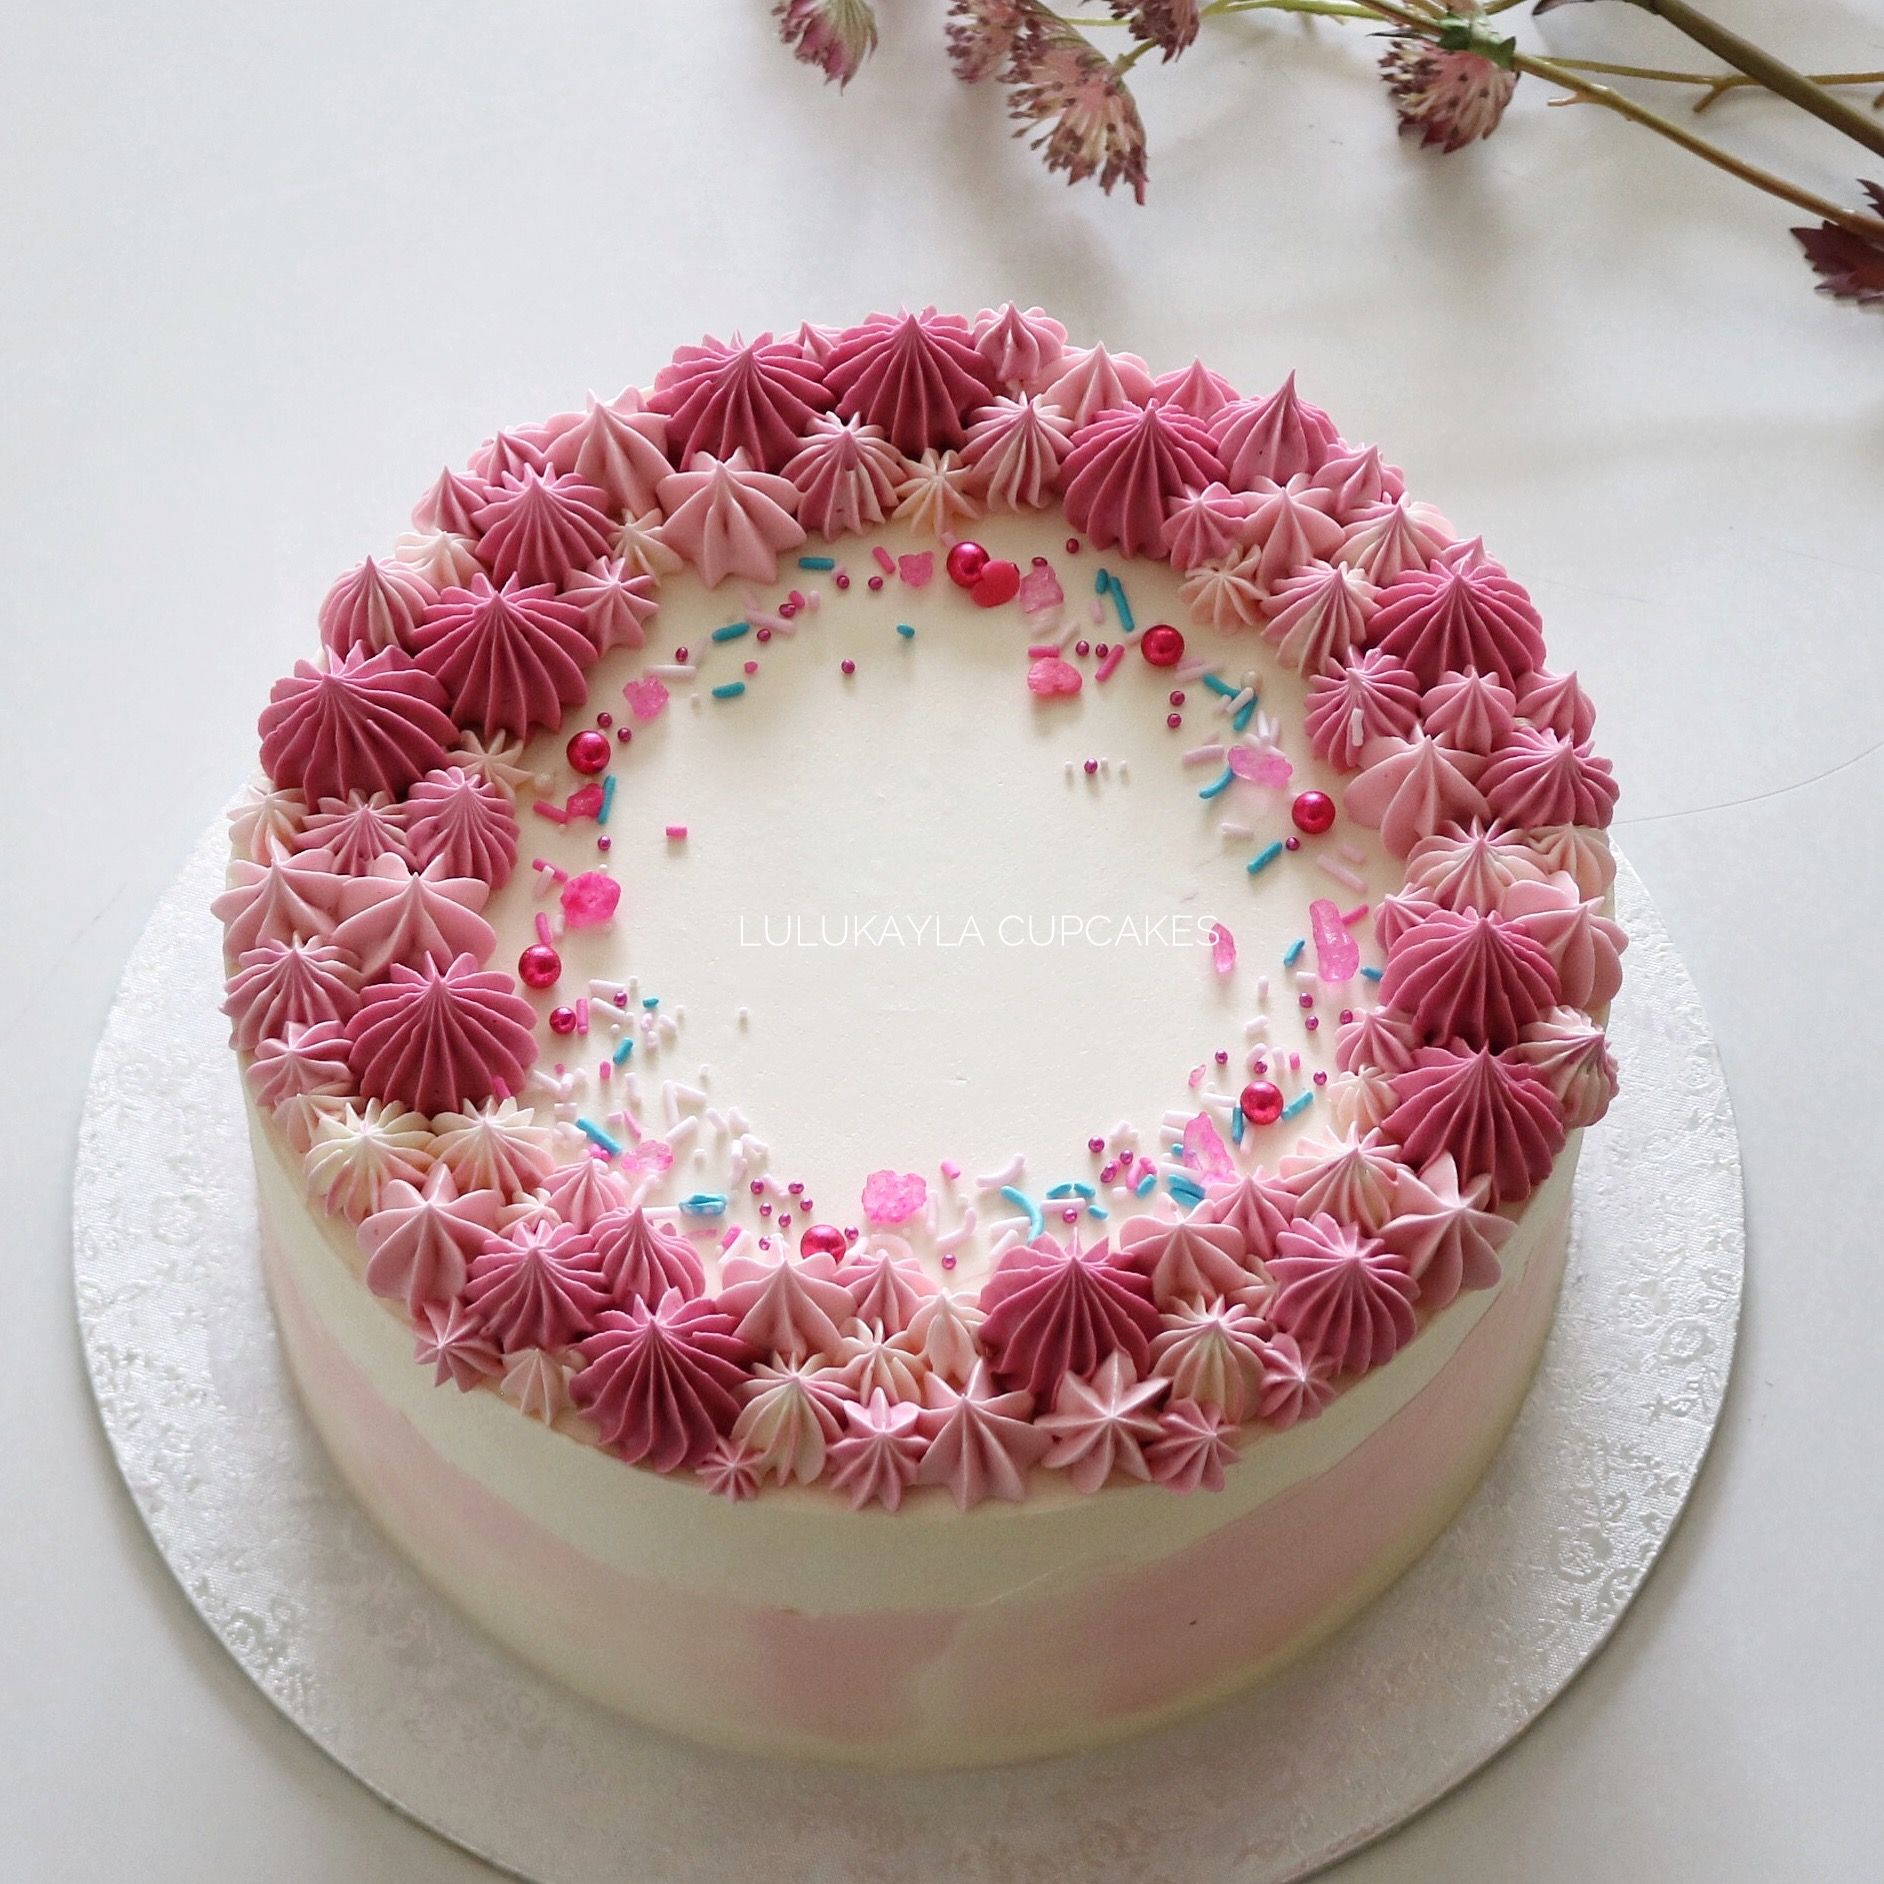 Pink Buttercream Cake With Images Buttercream Cake Decorating